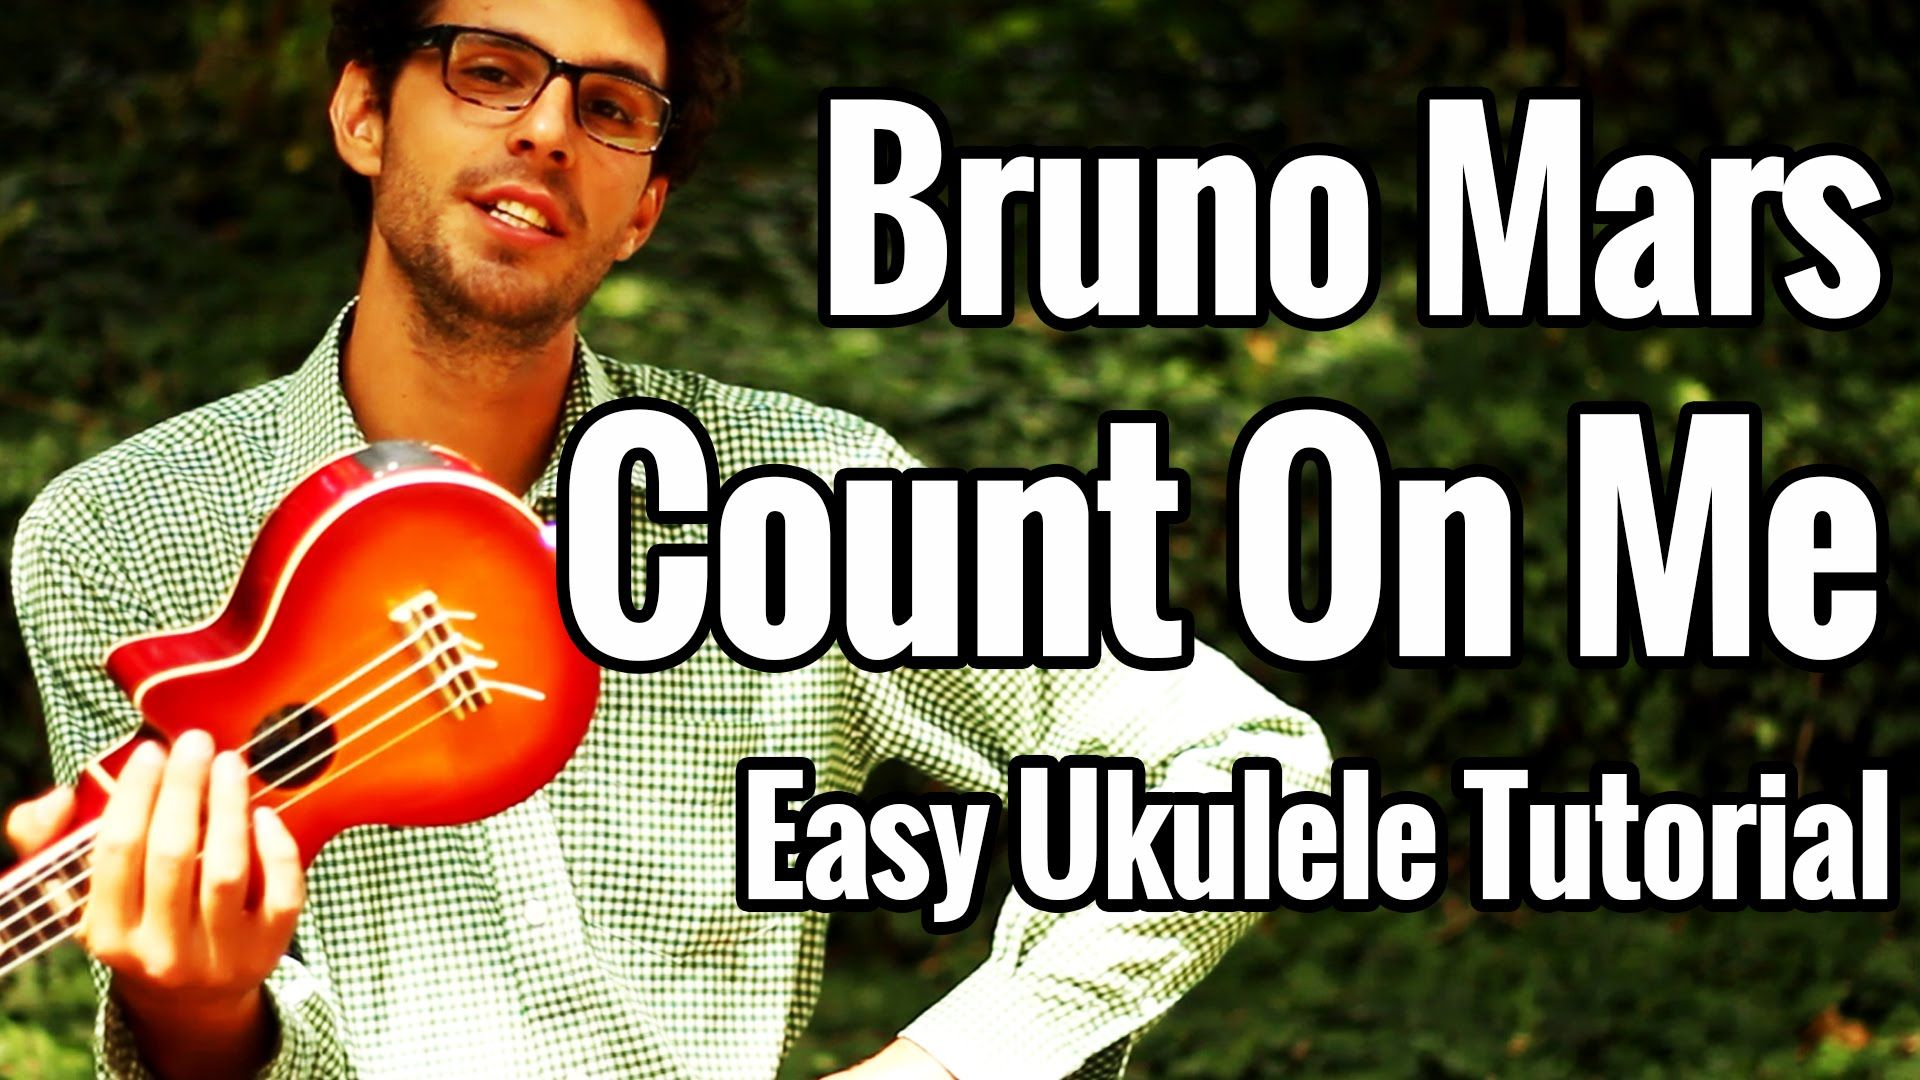 Count On Me Ukulele Tutorial With Stumming Pattern And Play Along Br Ukelele Chords Ukulele Songs Count On Me Ukulele Ukulele Songs